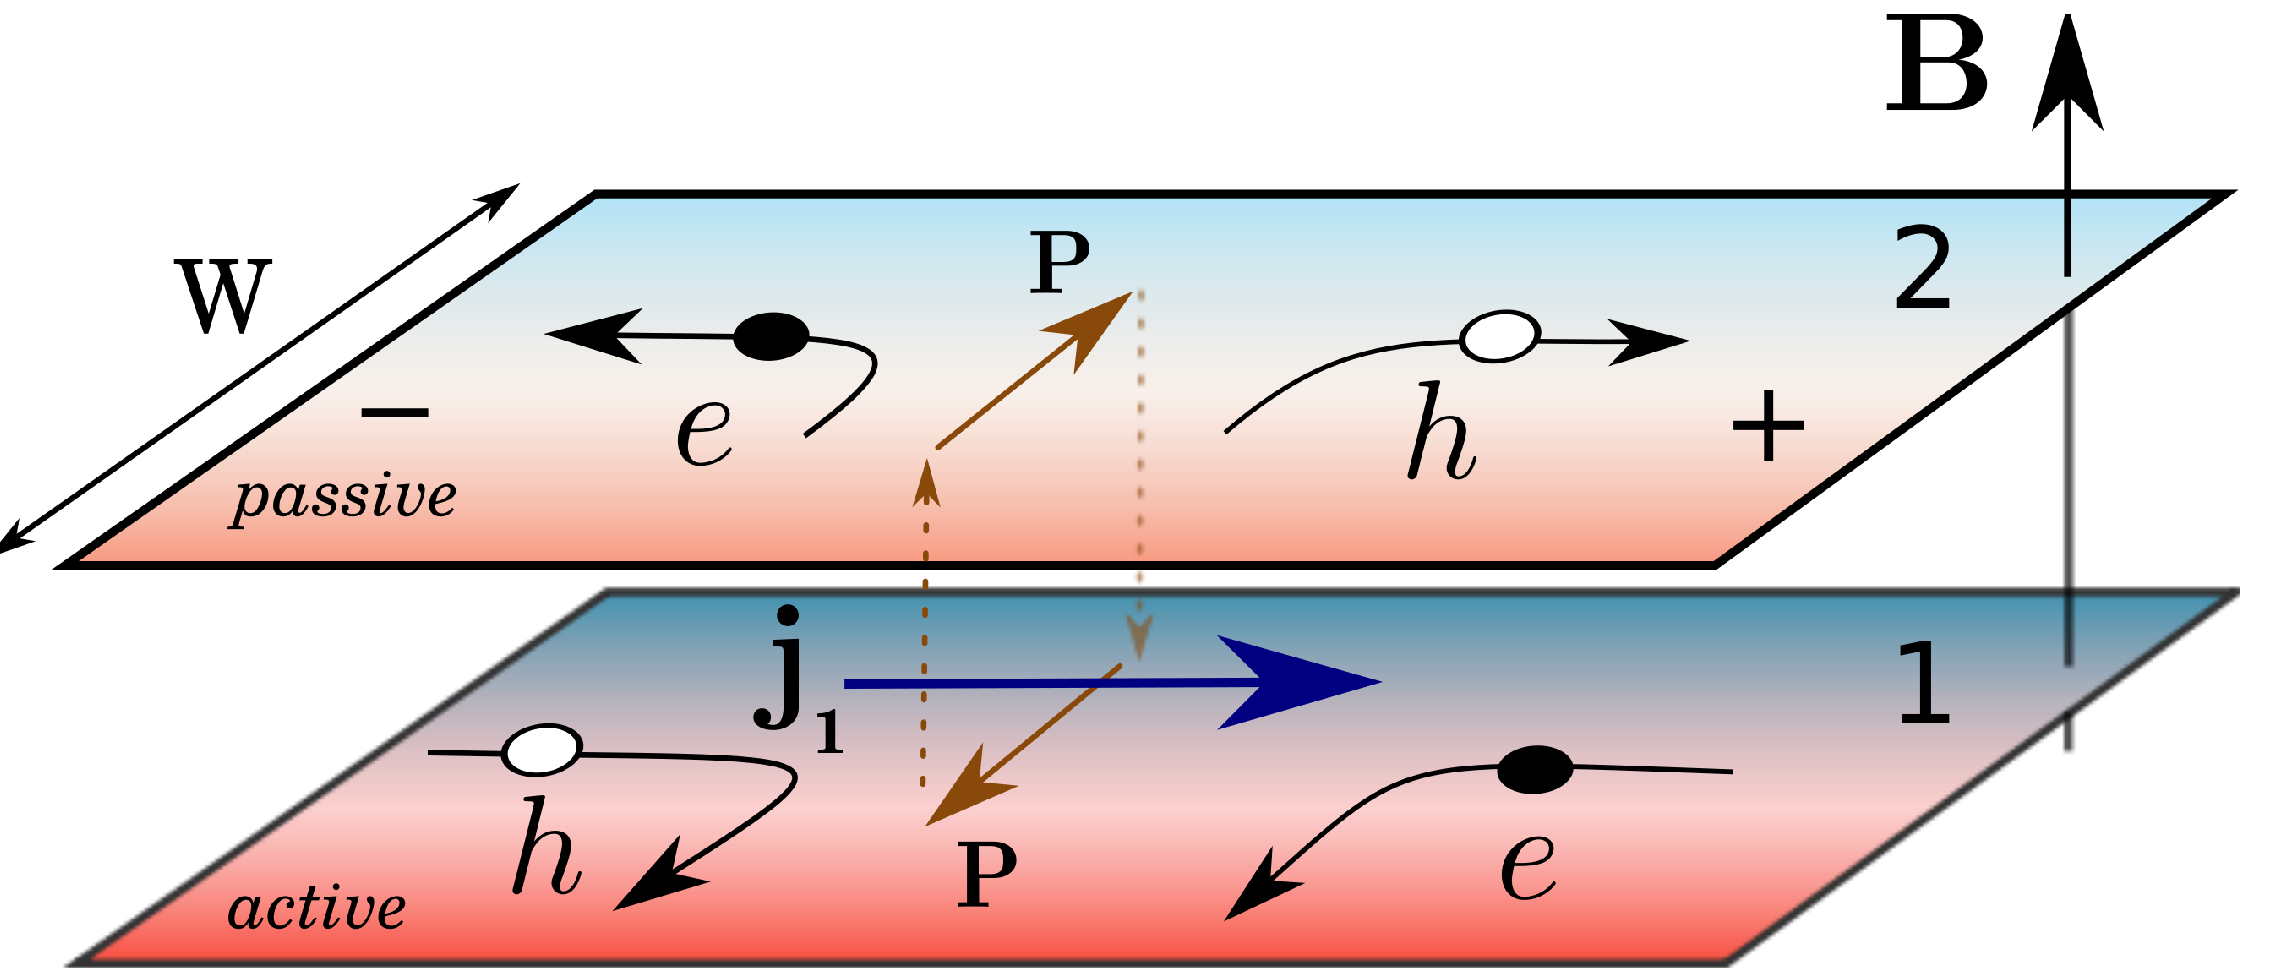 Qualitative mechanism of magnetodrag in graphene. Top panel: infinite sample, where the lateral quasiparticle flow (denoted by